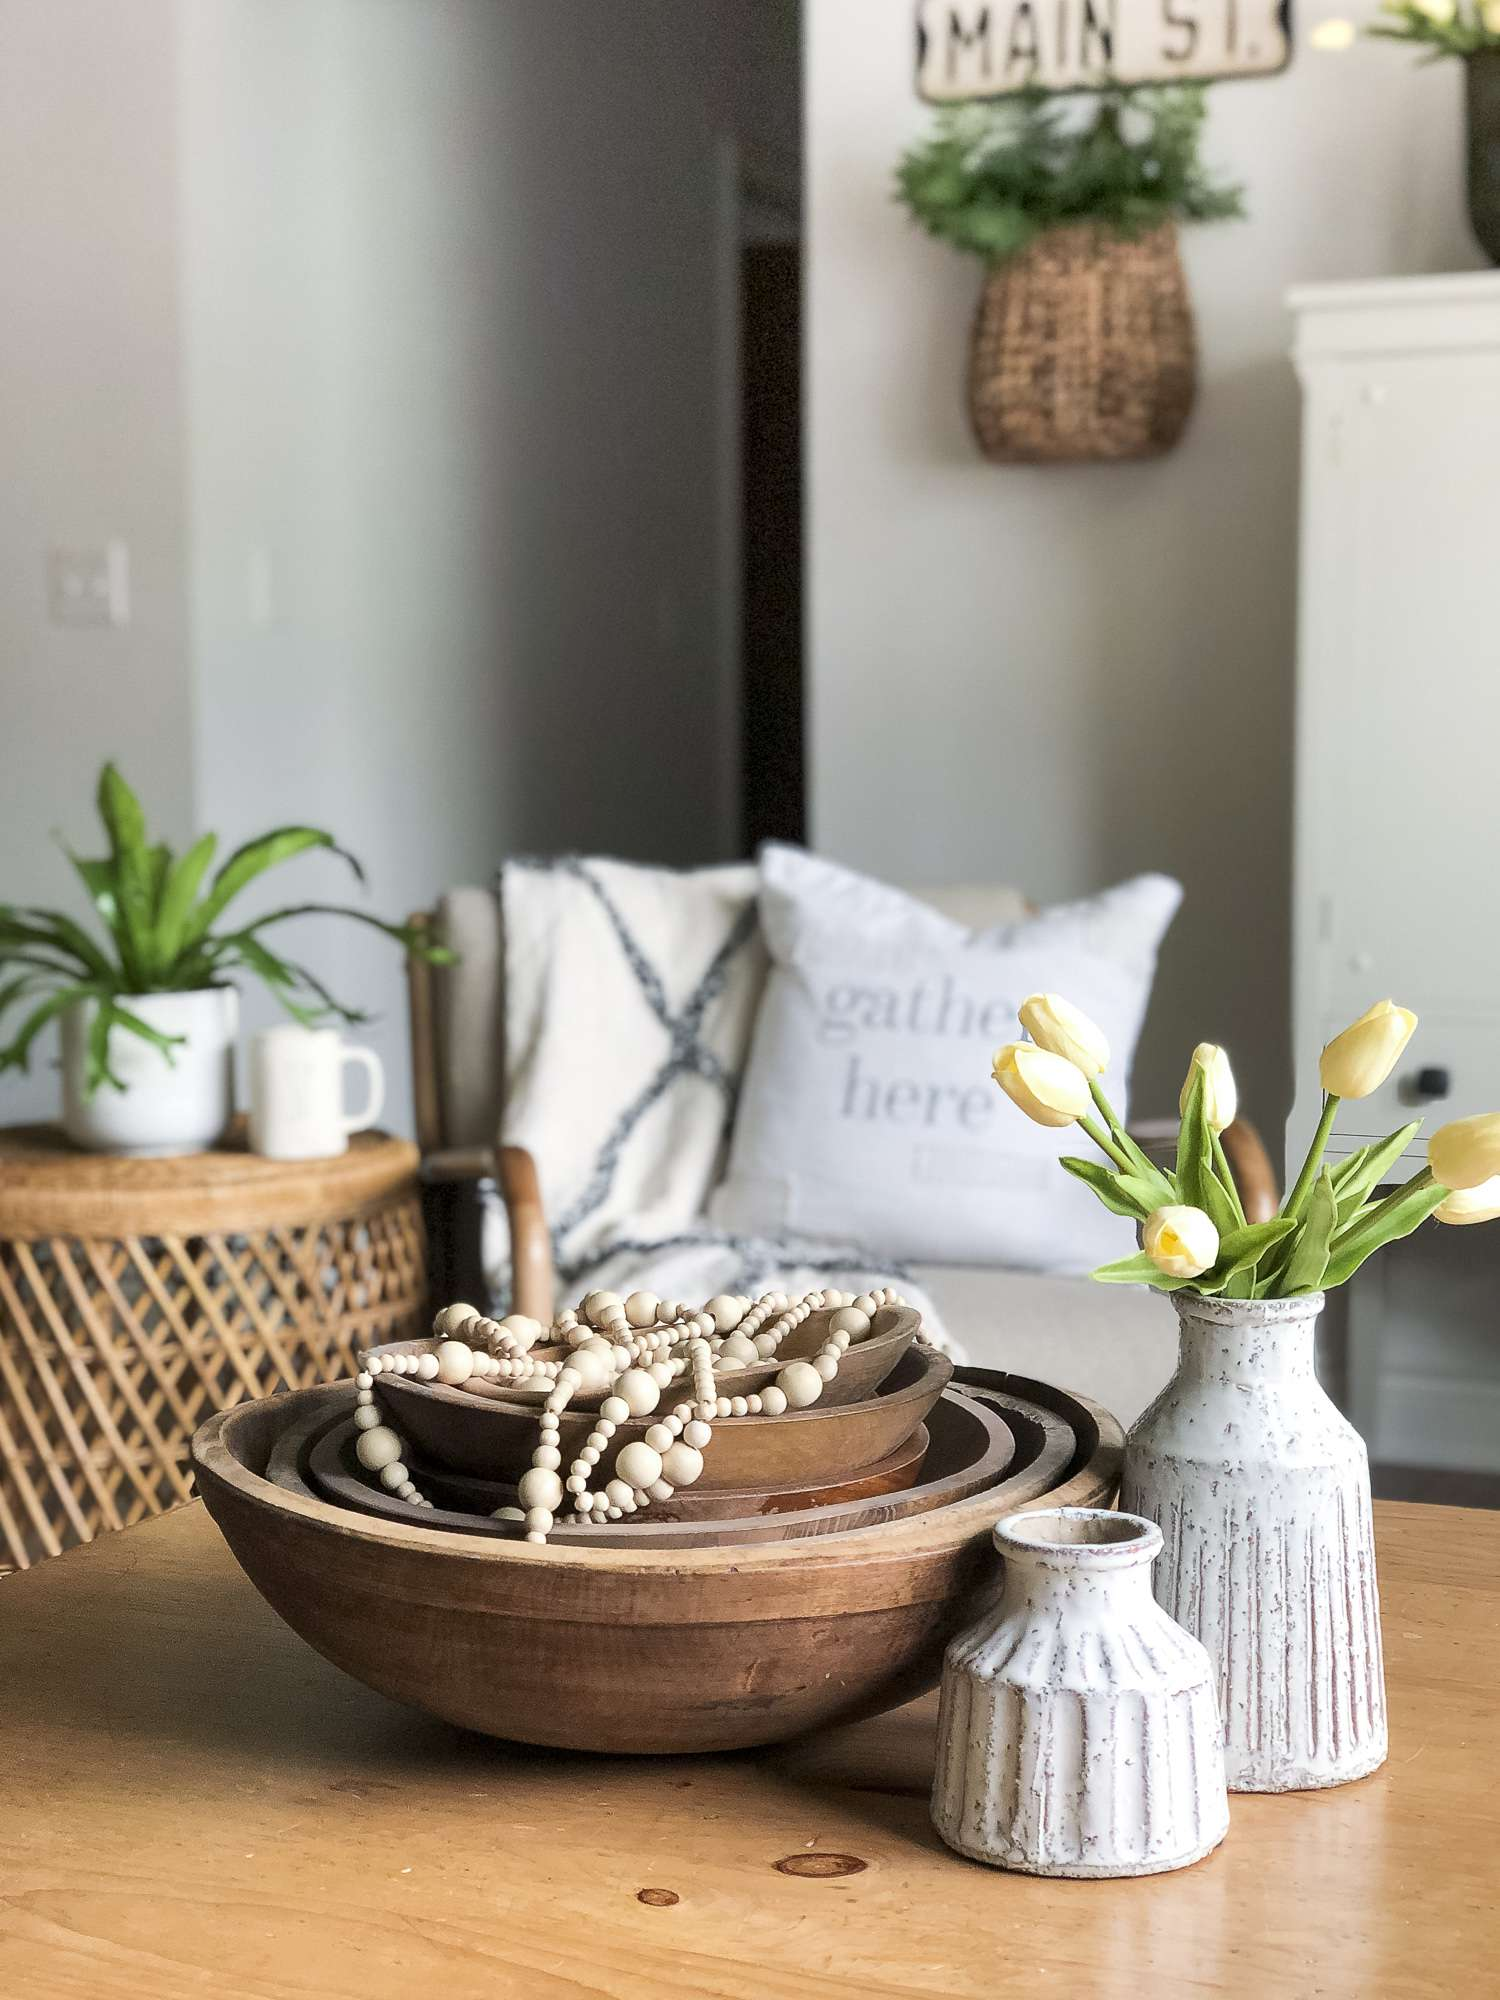 Do you love clean lines but crave cozy home decor? Learn how to get the modern farmouse living room look with simple design tips for the everyday home. #fromhousetohaven #livingroomdecor #modernfarmhousedesign